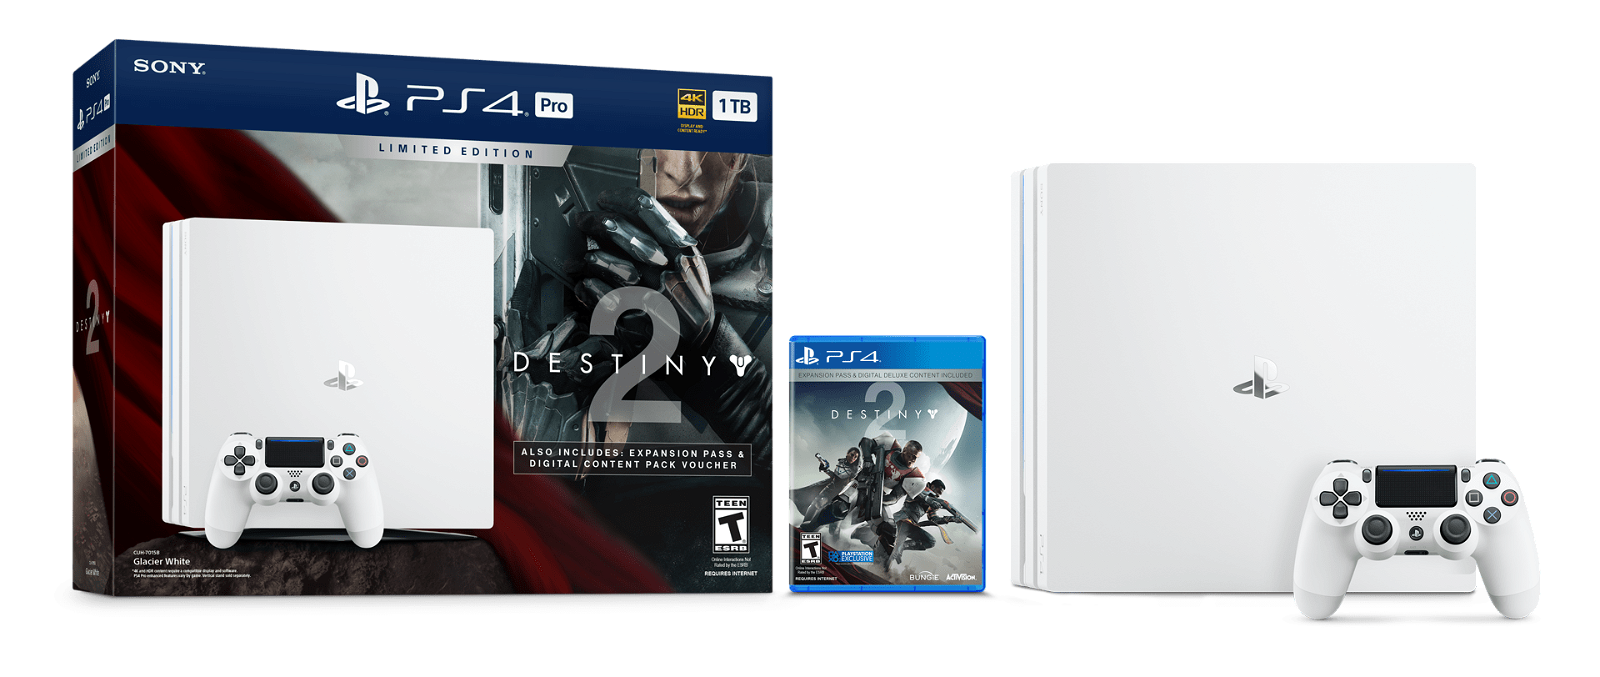 Destiny 2 Limited Edition Playstation 4 Pro Console Announced